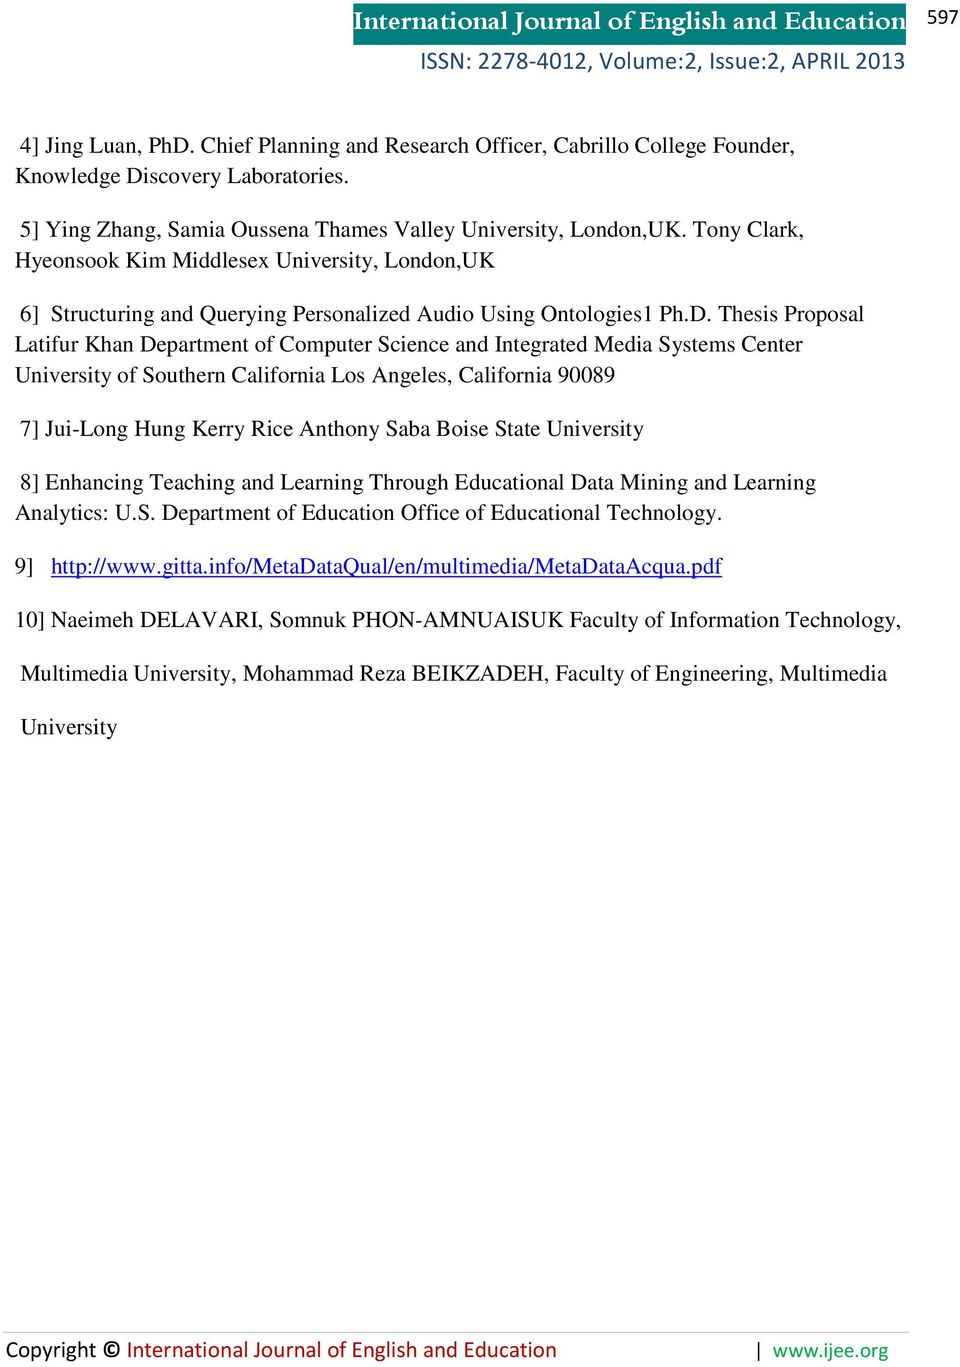 Thesis Proposal Latifur Khan Department of Computer Science and Integrated Media Systems Center University of Southern California Los Angeles, California 90089 7] Jui-Long Hung Kerry Rice Anthony